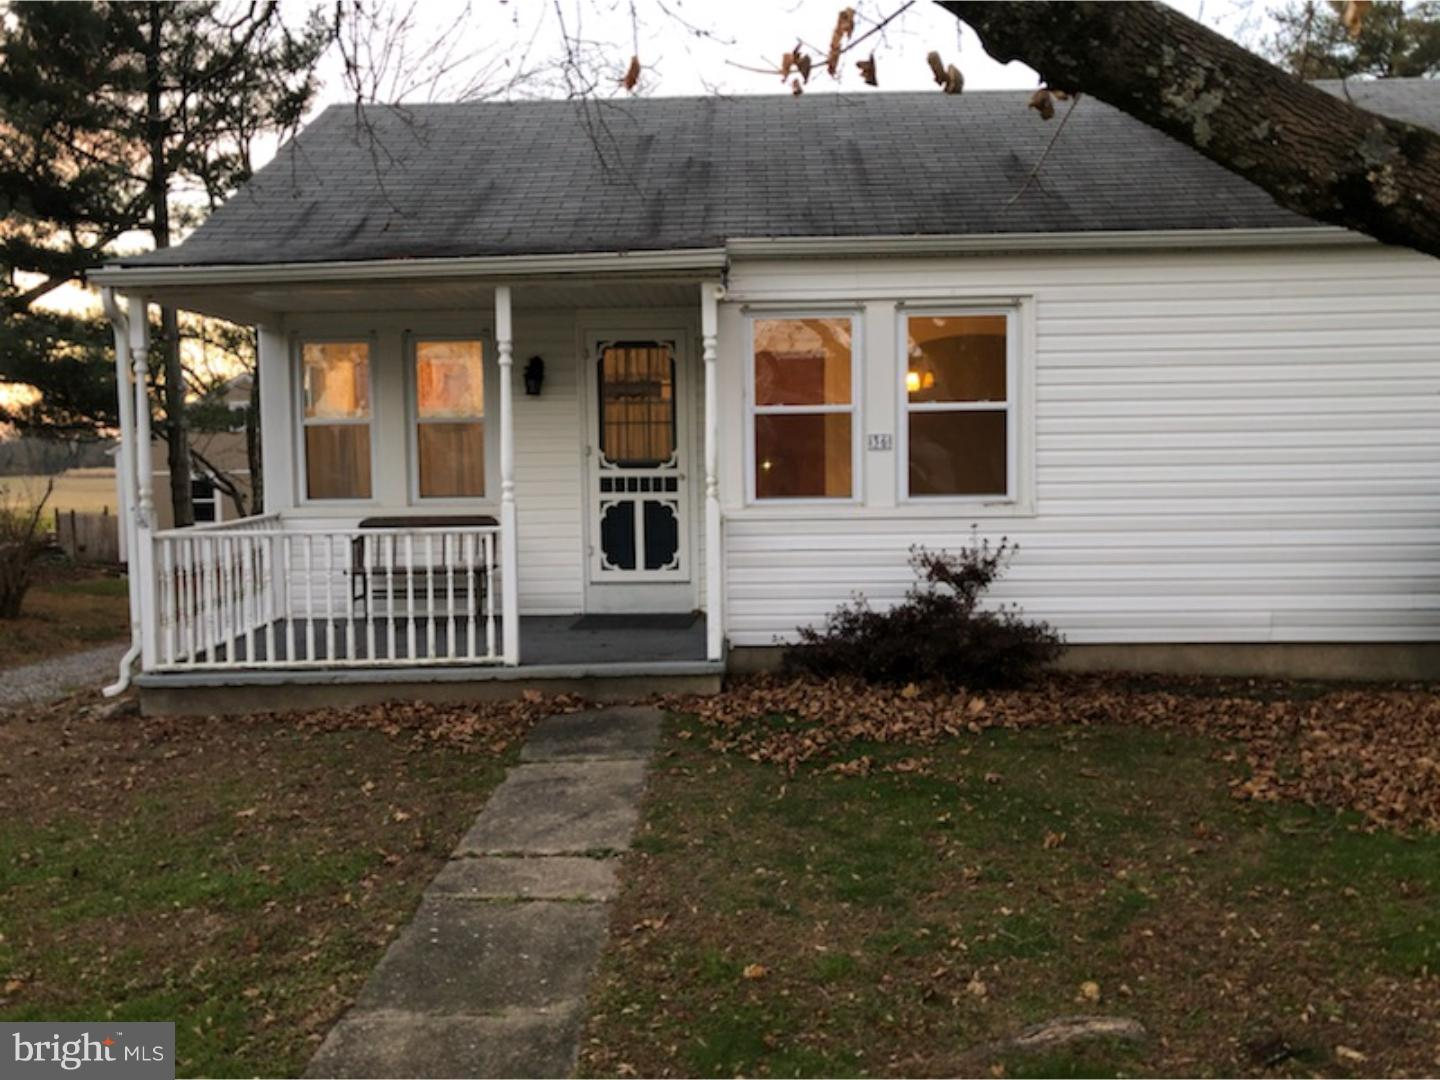 Single Family Home for Sale at 36 TOWNSEND Avenue Bridgeton, New Jersey 08302 United StatesMunicipality: Hopewell Township